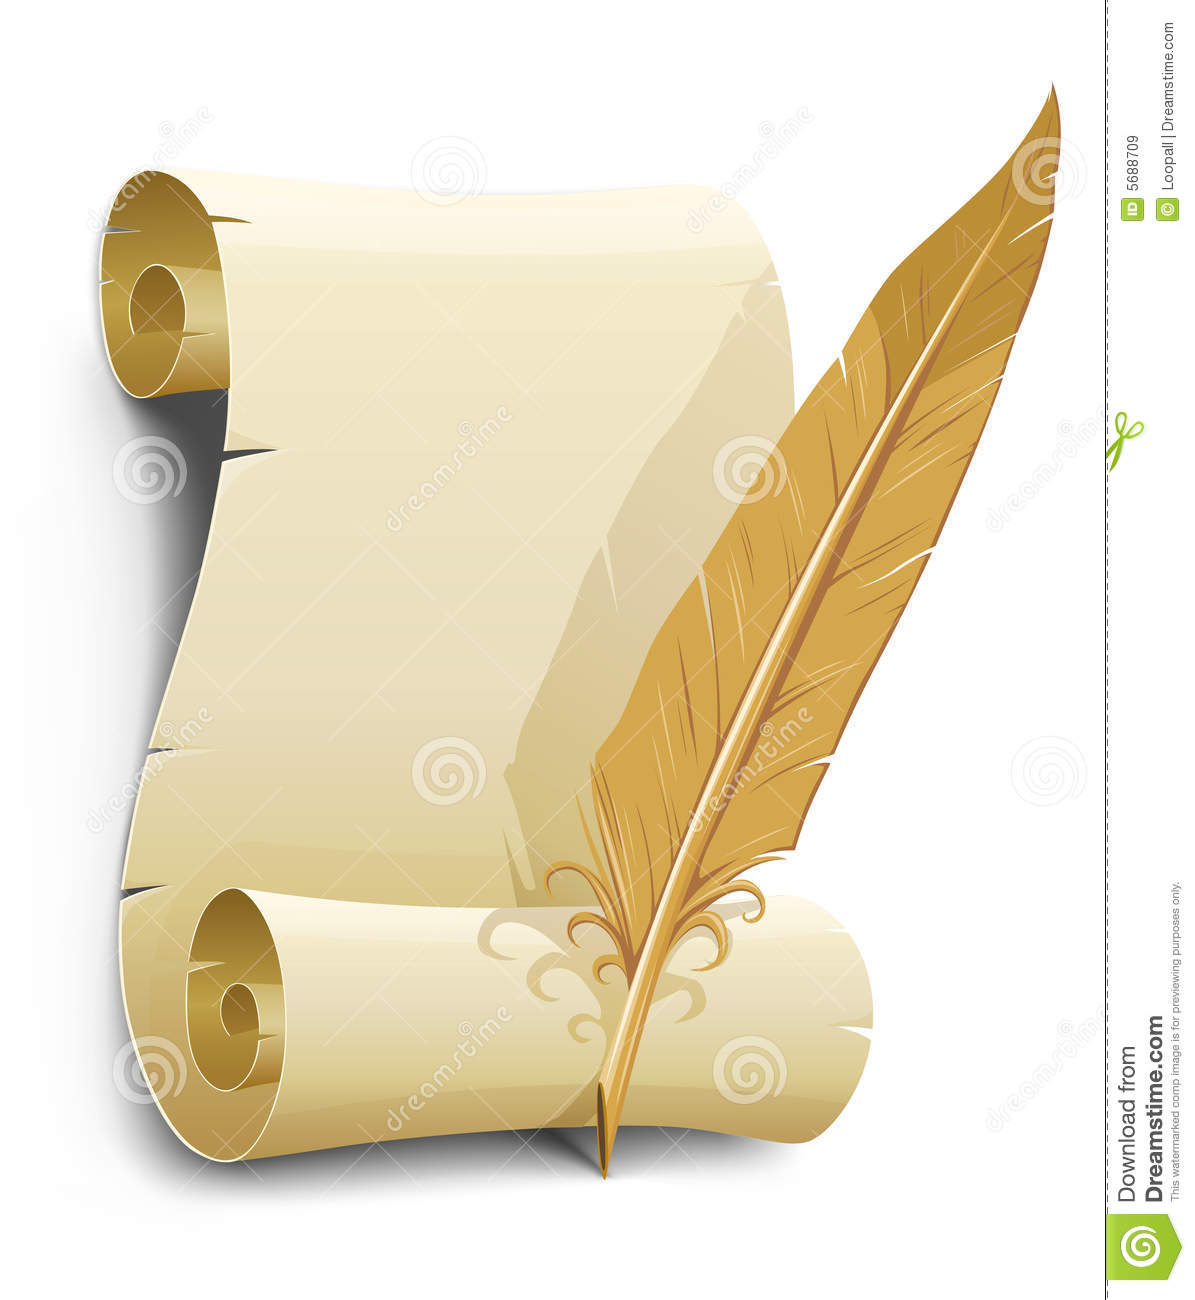 Old Paper With Feather Illustration Royalty Free Stock